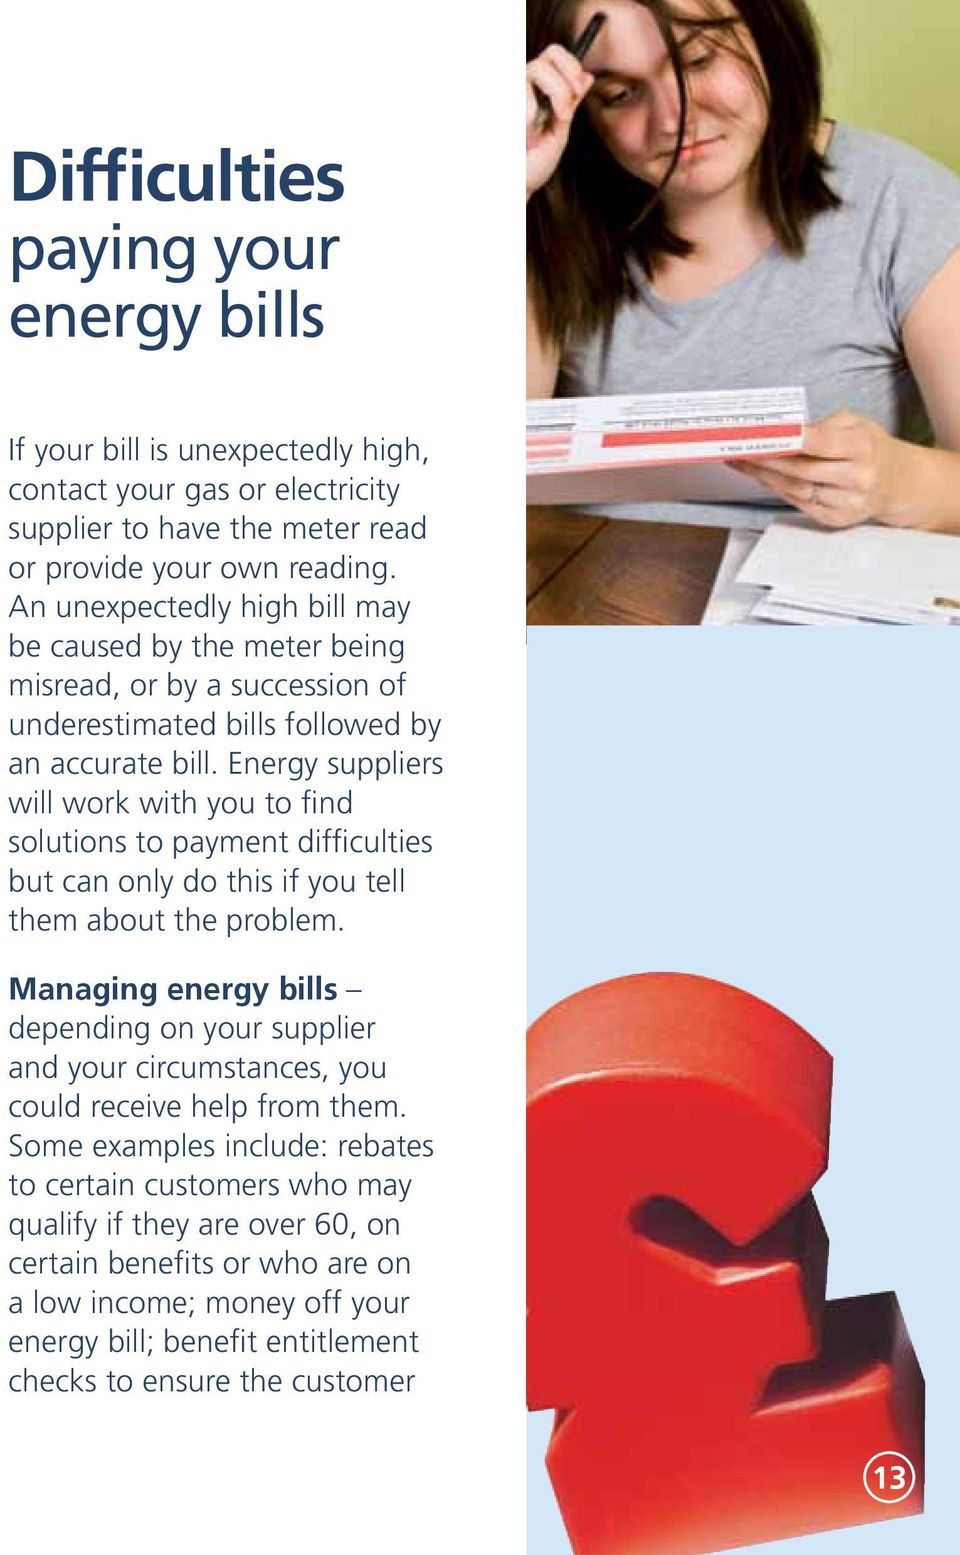 Energy suppliers will work with you to find solutions to payment difficulties but can only do this if you tell them about the problem.